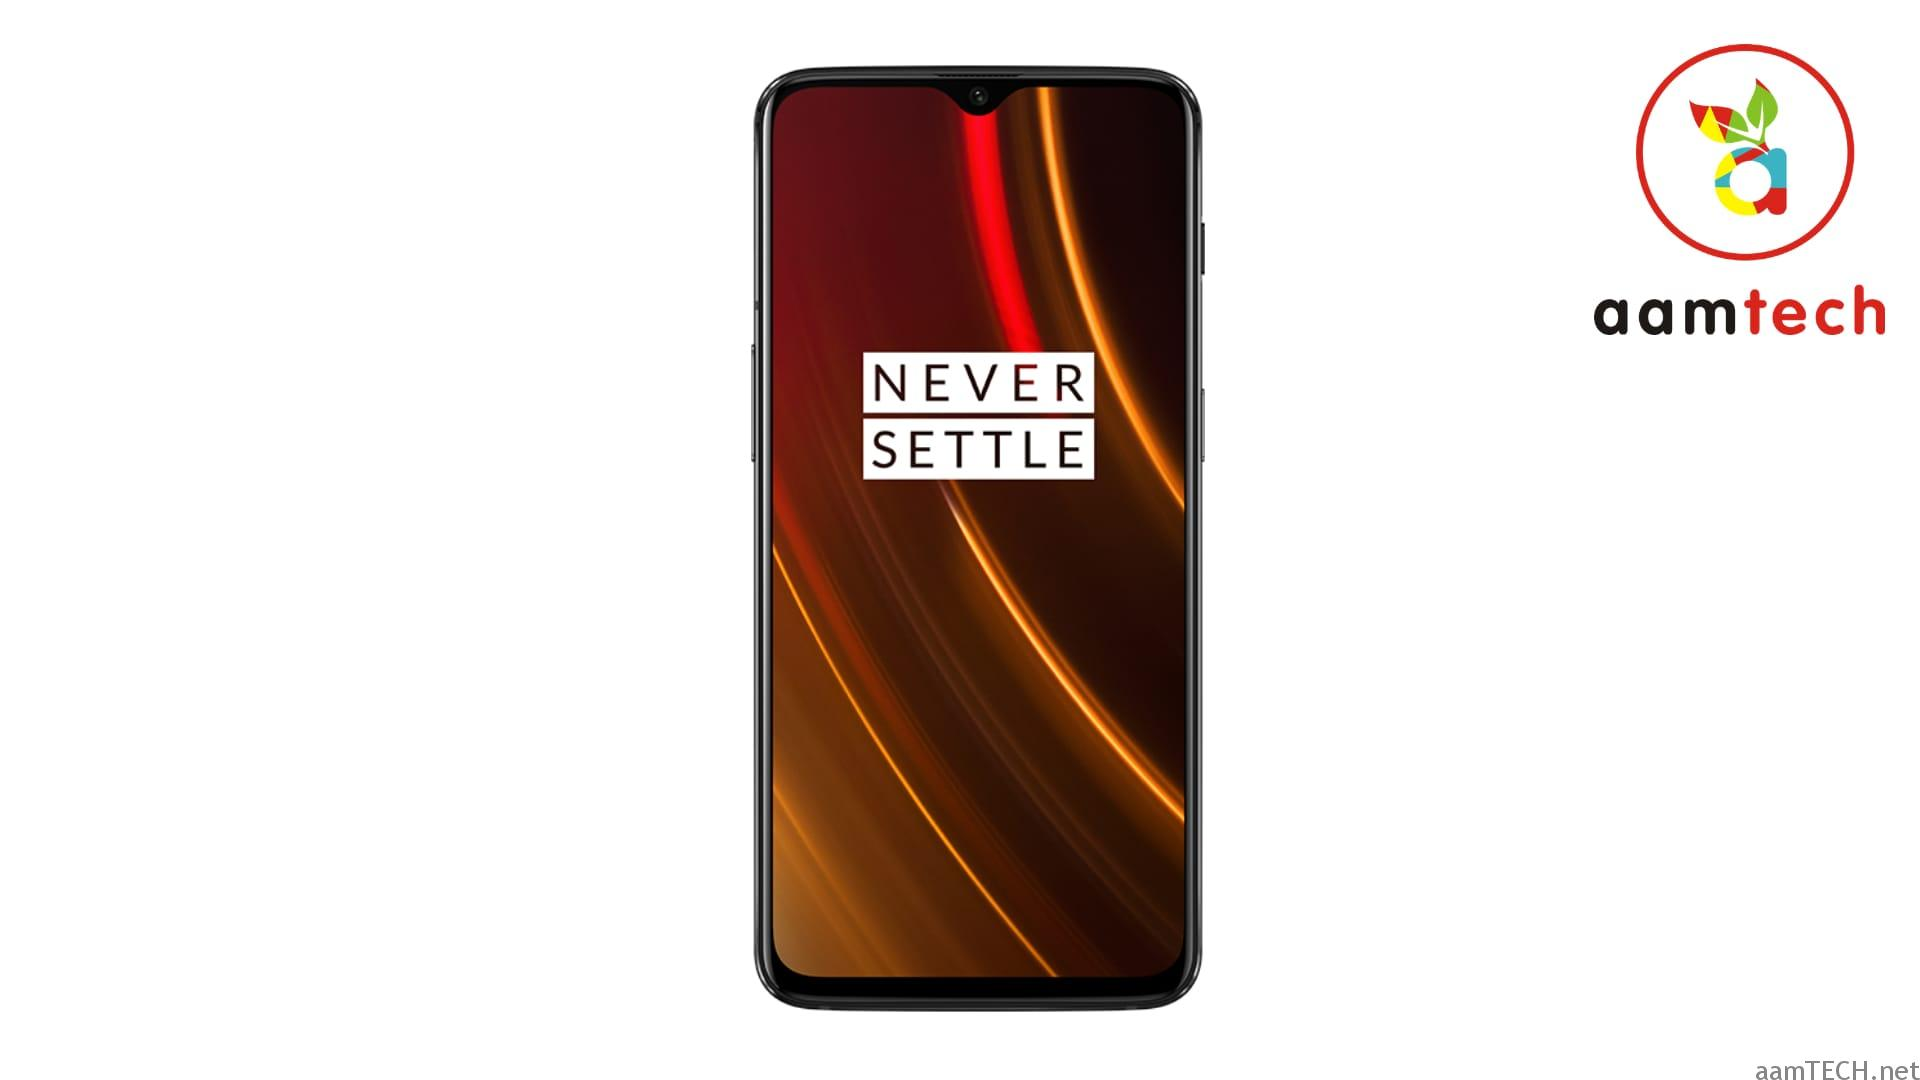 oneplus mclaren edition price in india